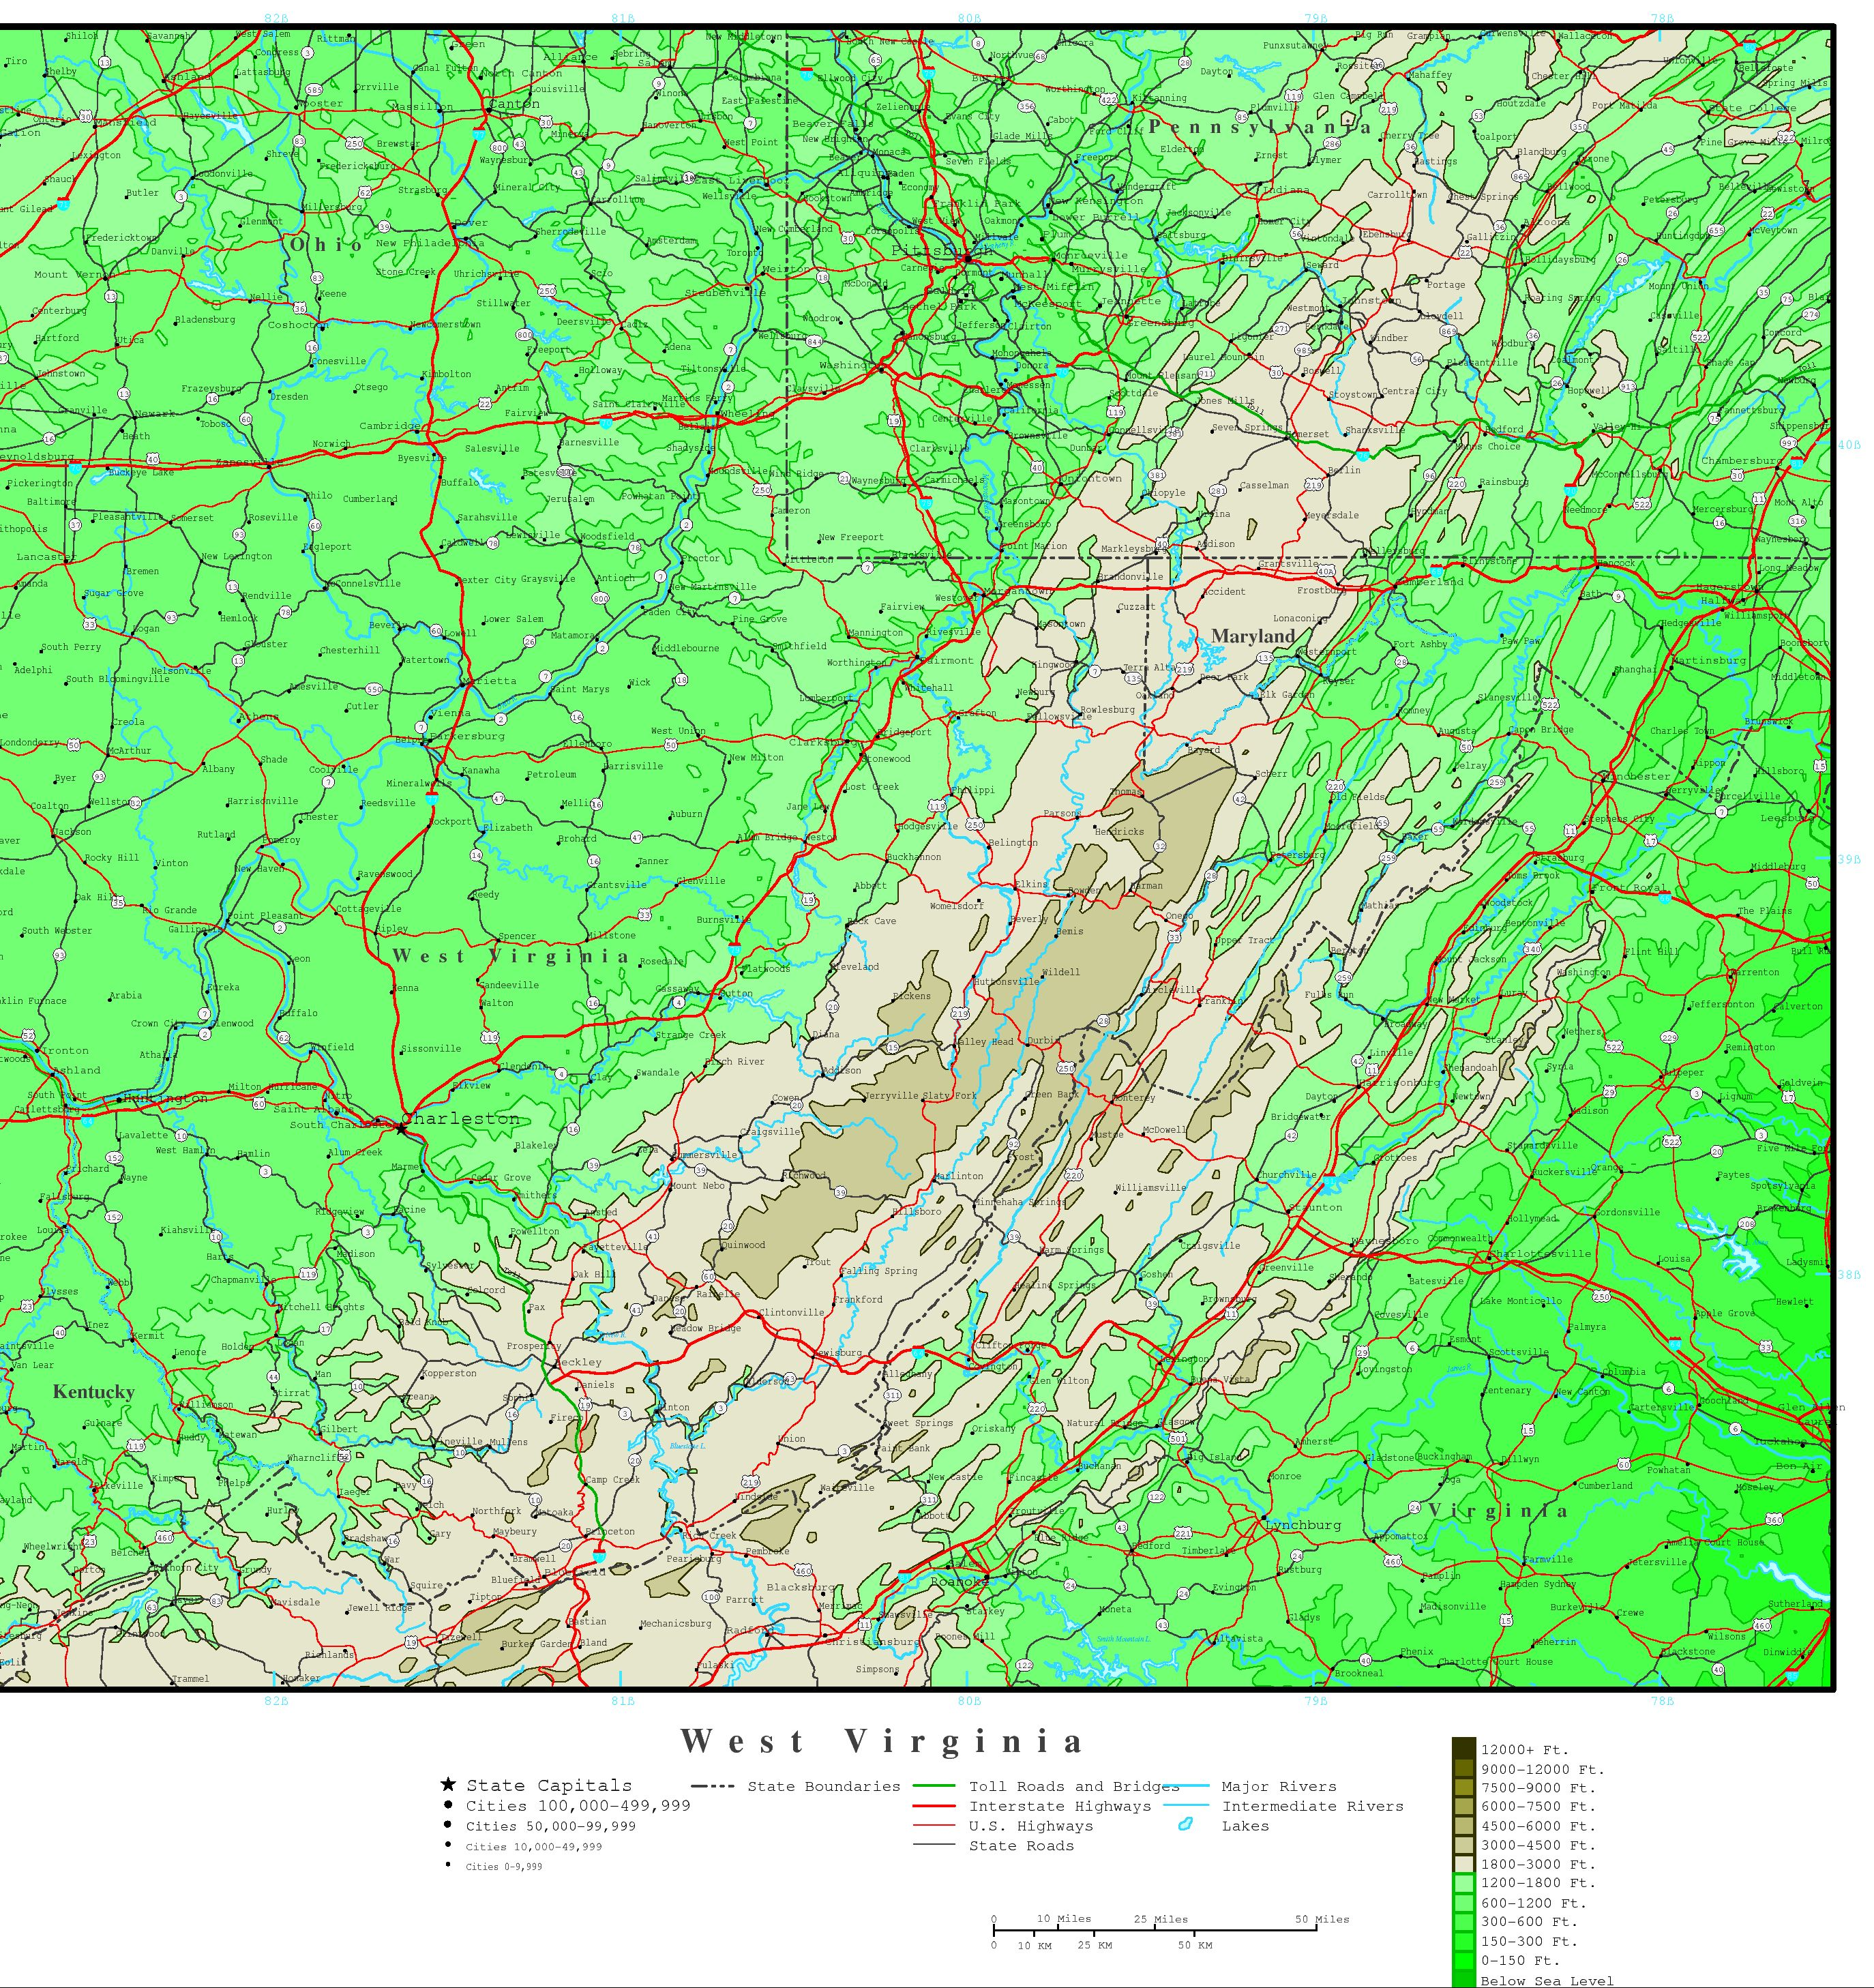 West Virginia Elevation Map - West virginia on a map of the us